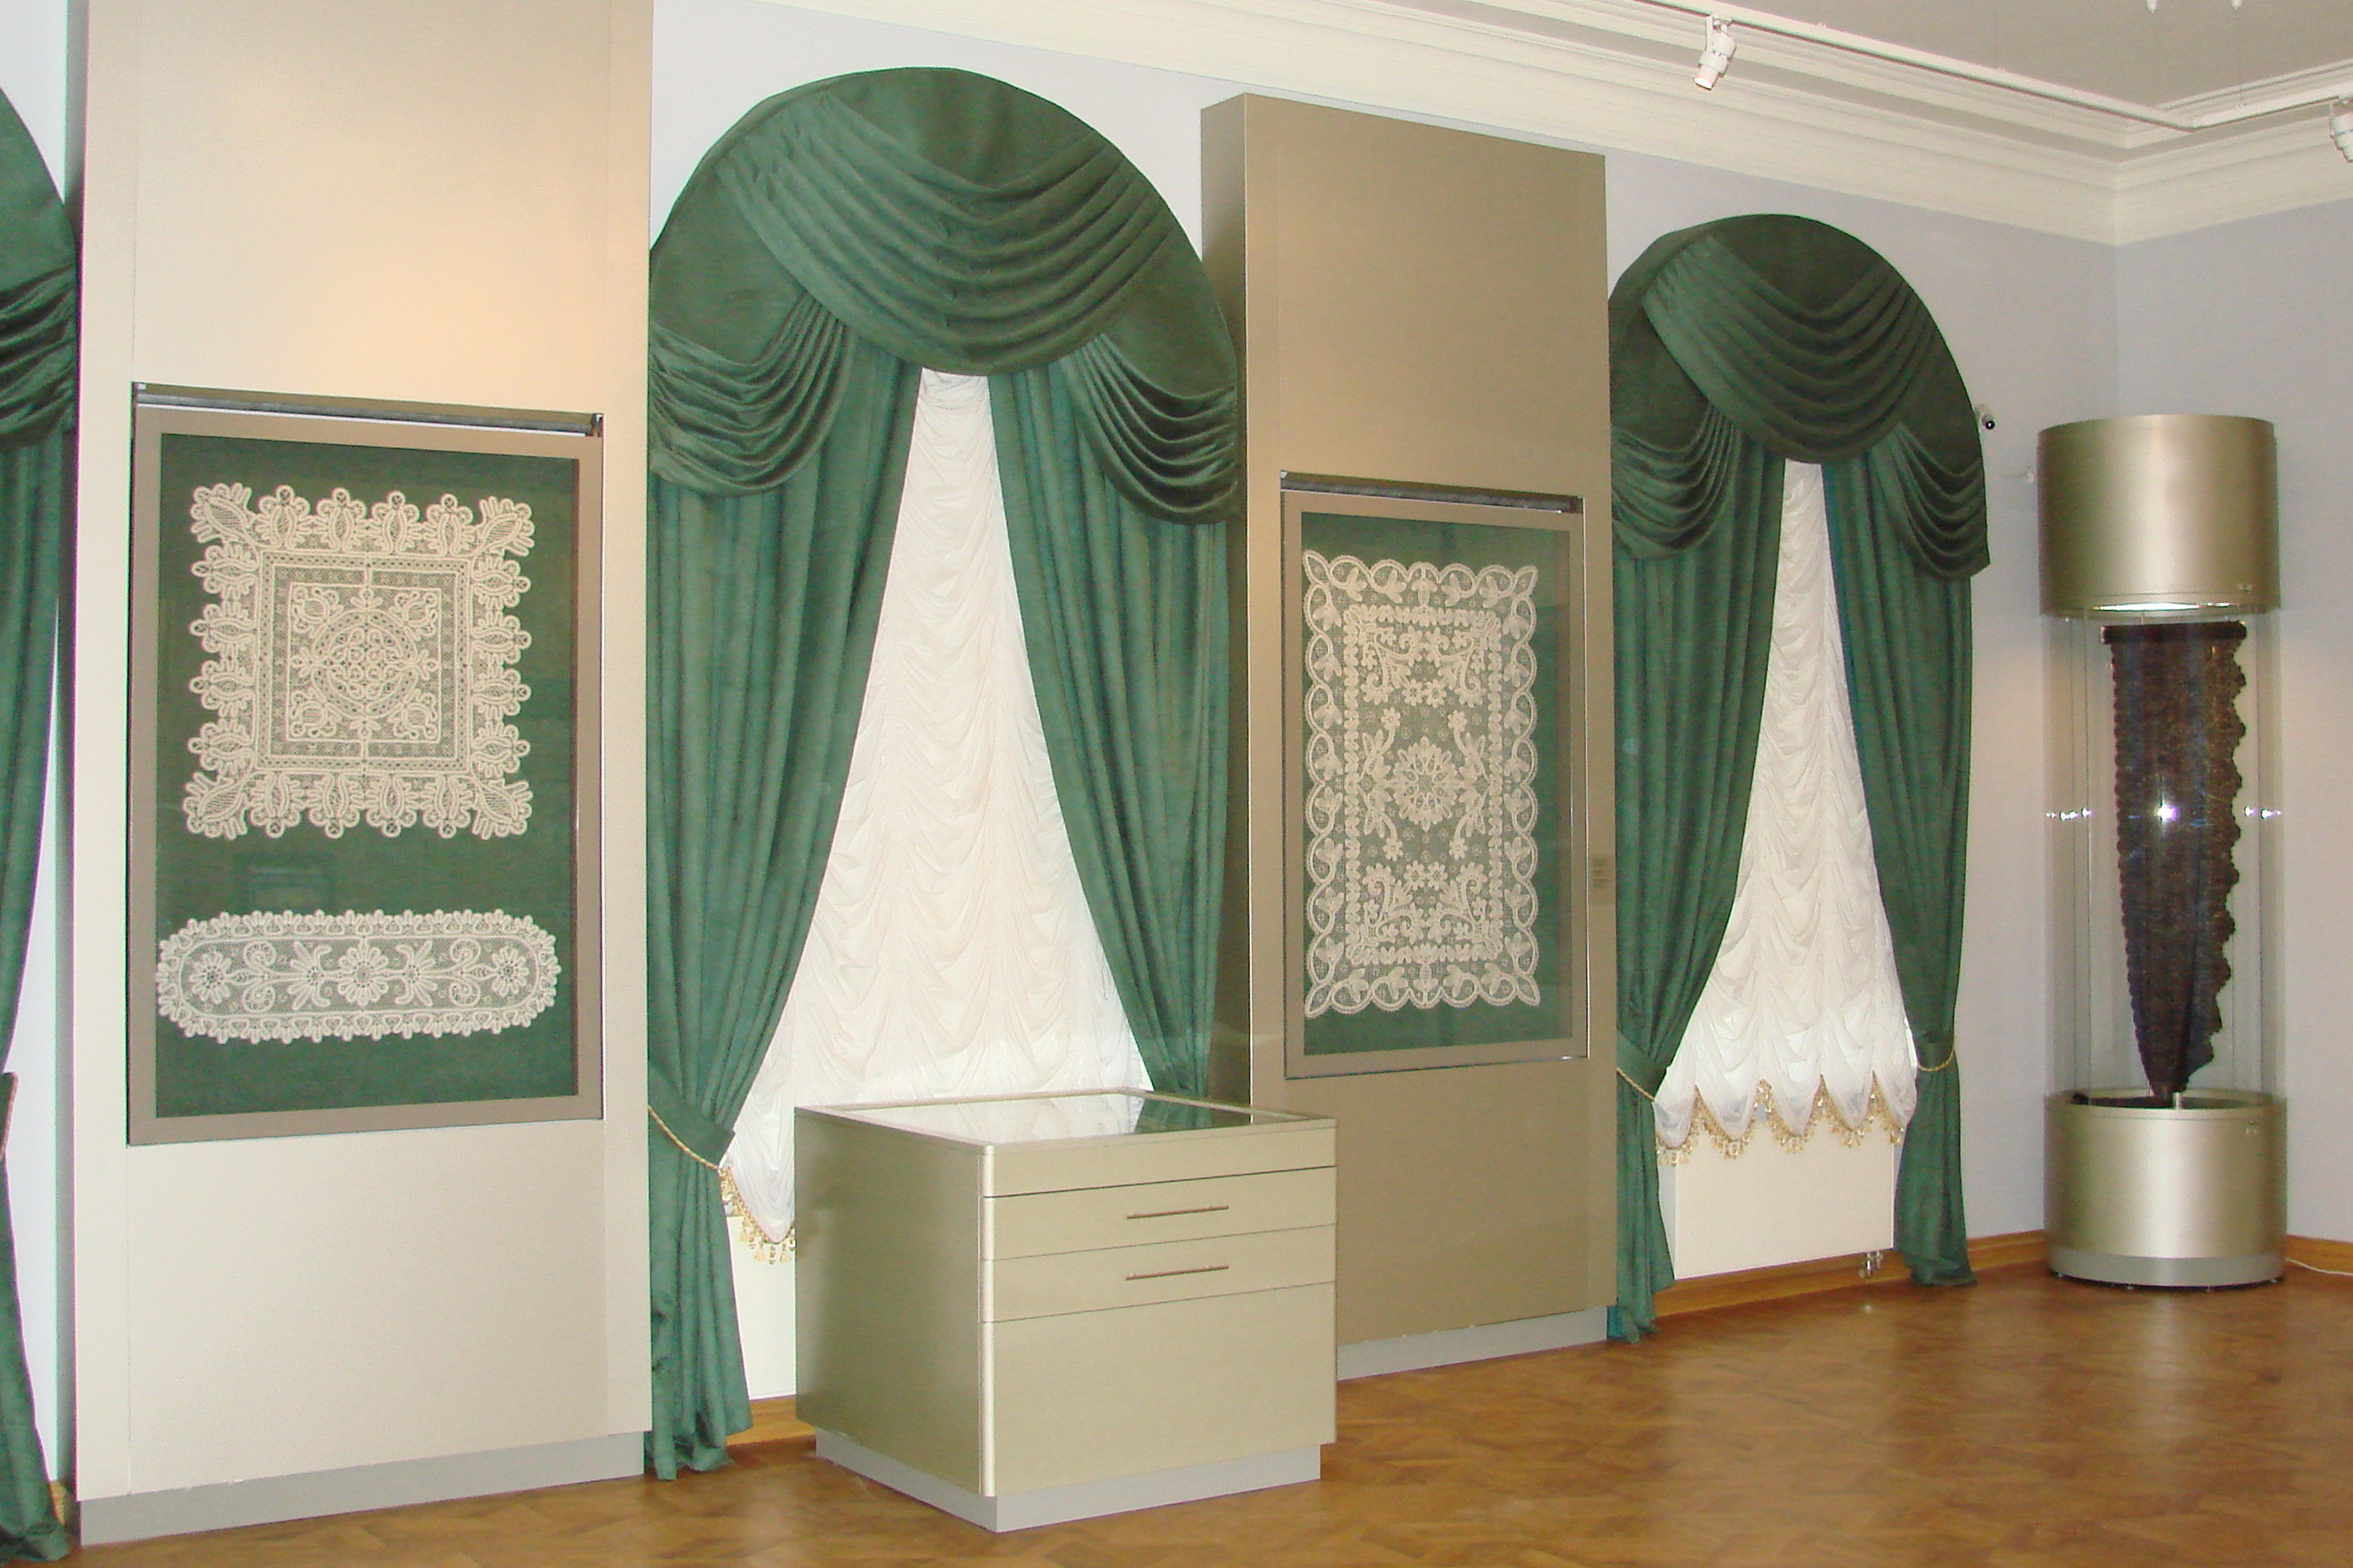 Vologda, Museum of lace 9